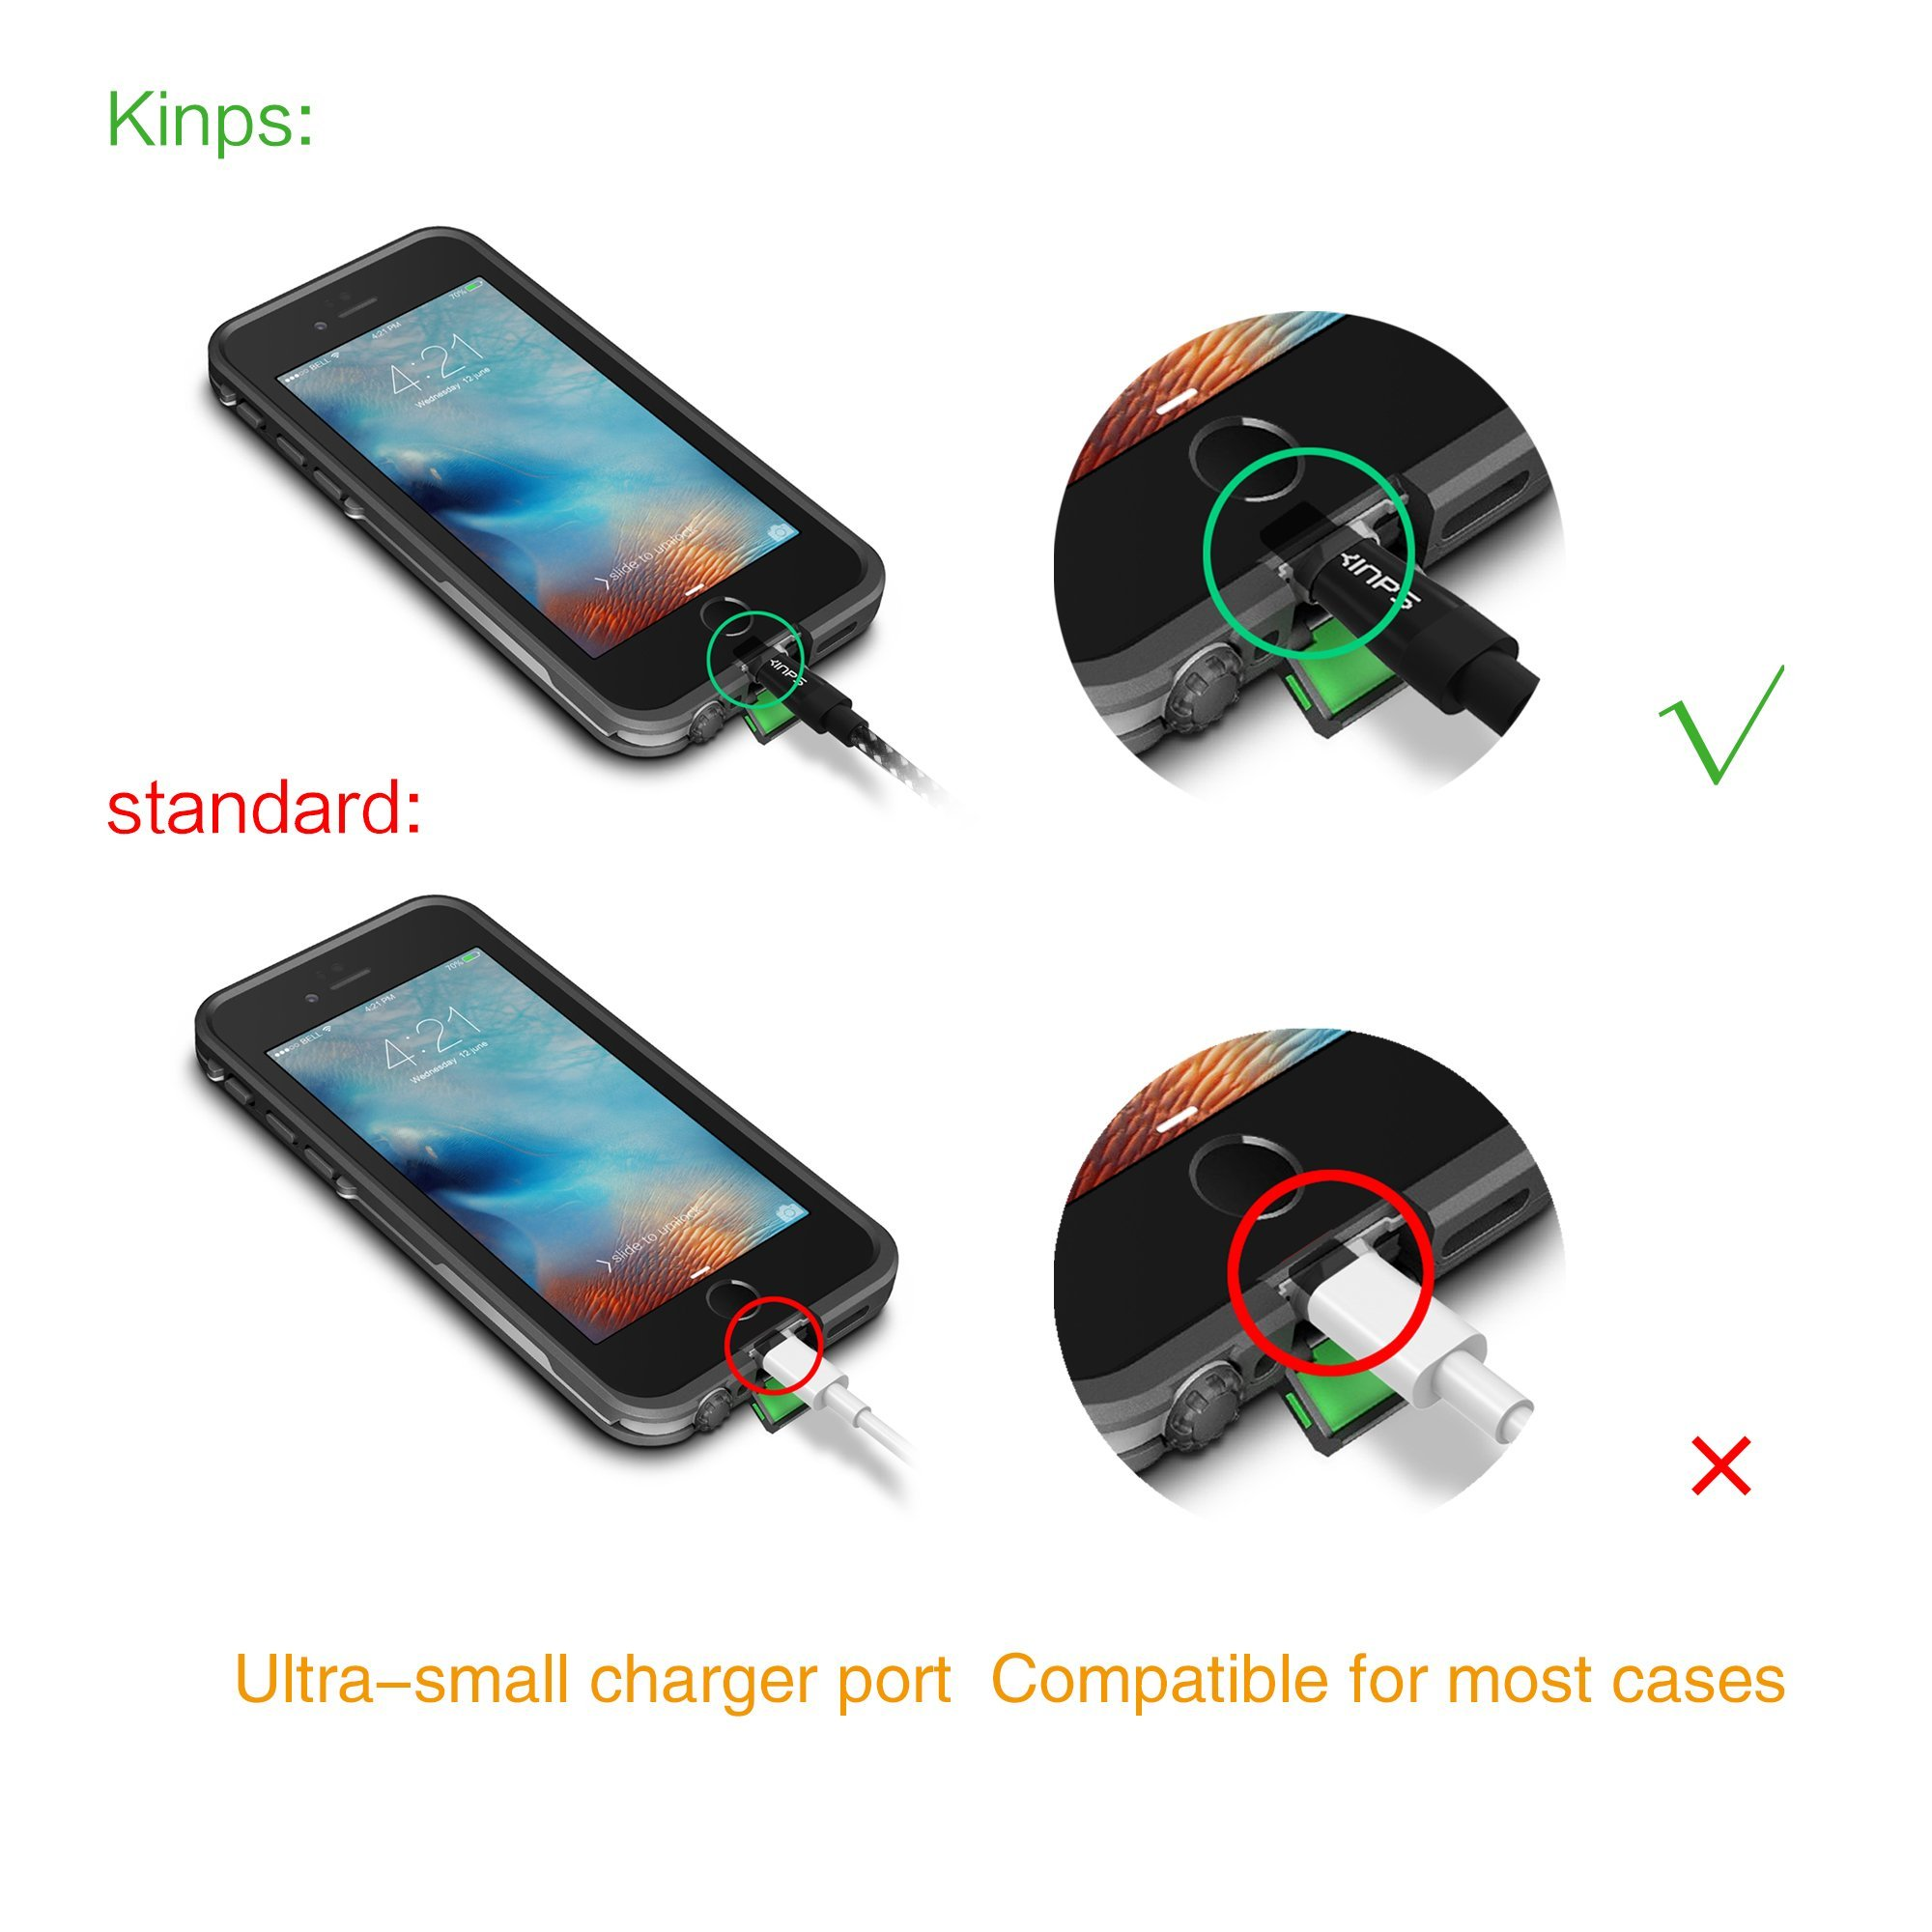 Kinps Apple MFi Certified Lightning to USB Cable 10ft/3m iPhone Charger Cord Super Long for iPhone X / 8 / 8 Plus / 7 / 7 Plus / 6S / 6S Plus / 6 / 6 Plus / SE, iPad Pro / Air / Mini (Nylon-Black) by Kinps (Image #3)